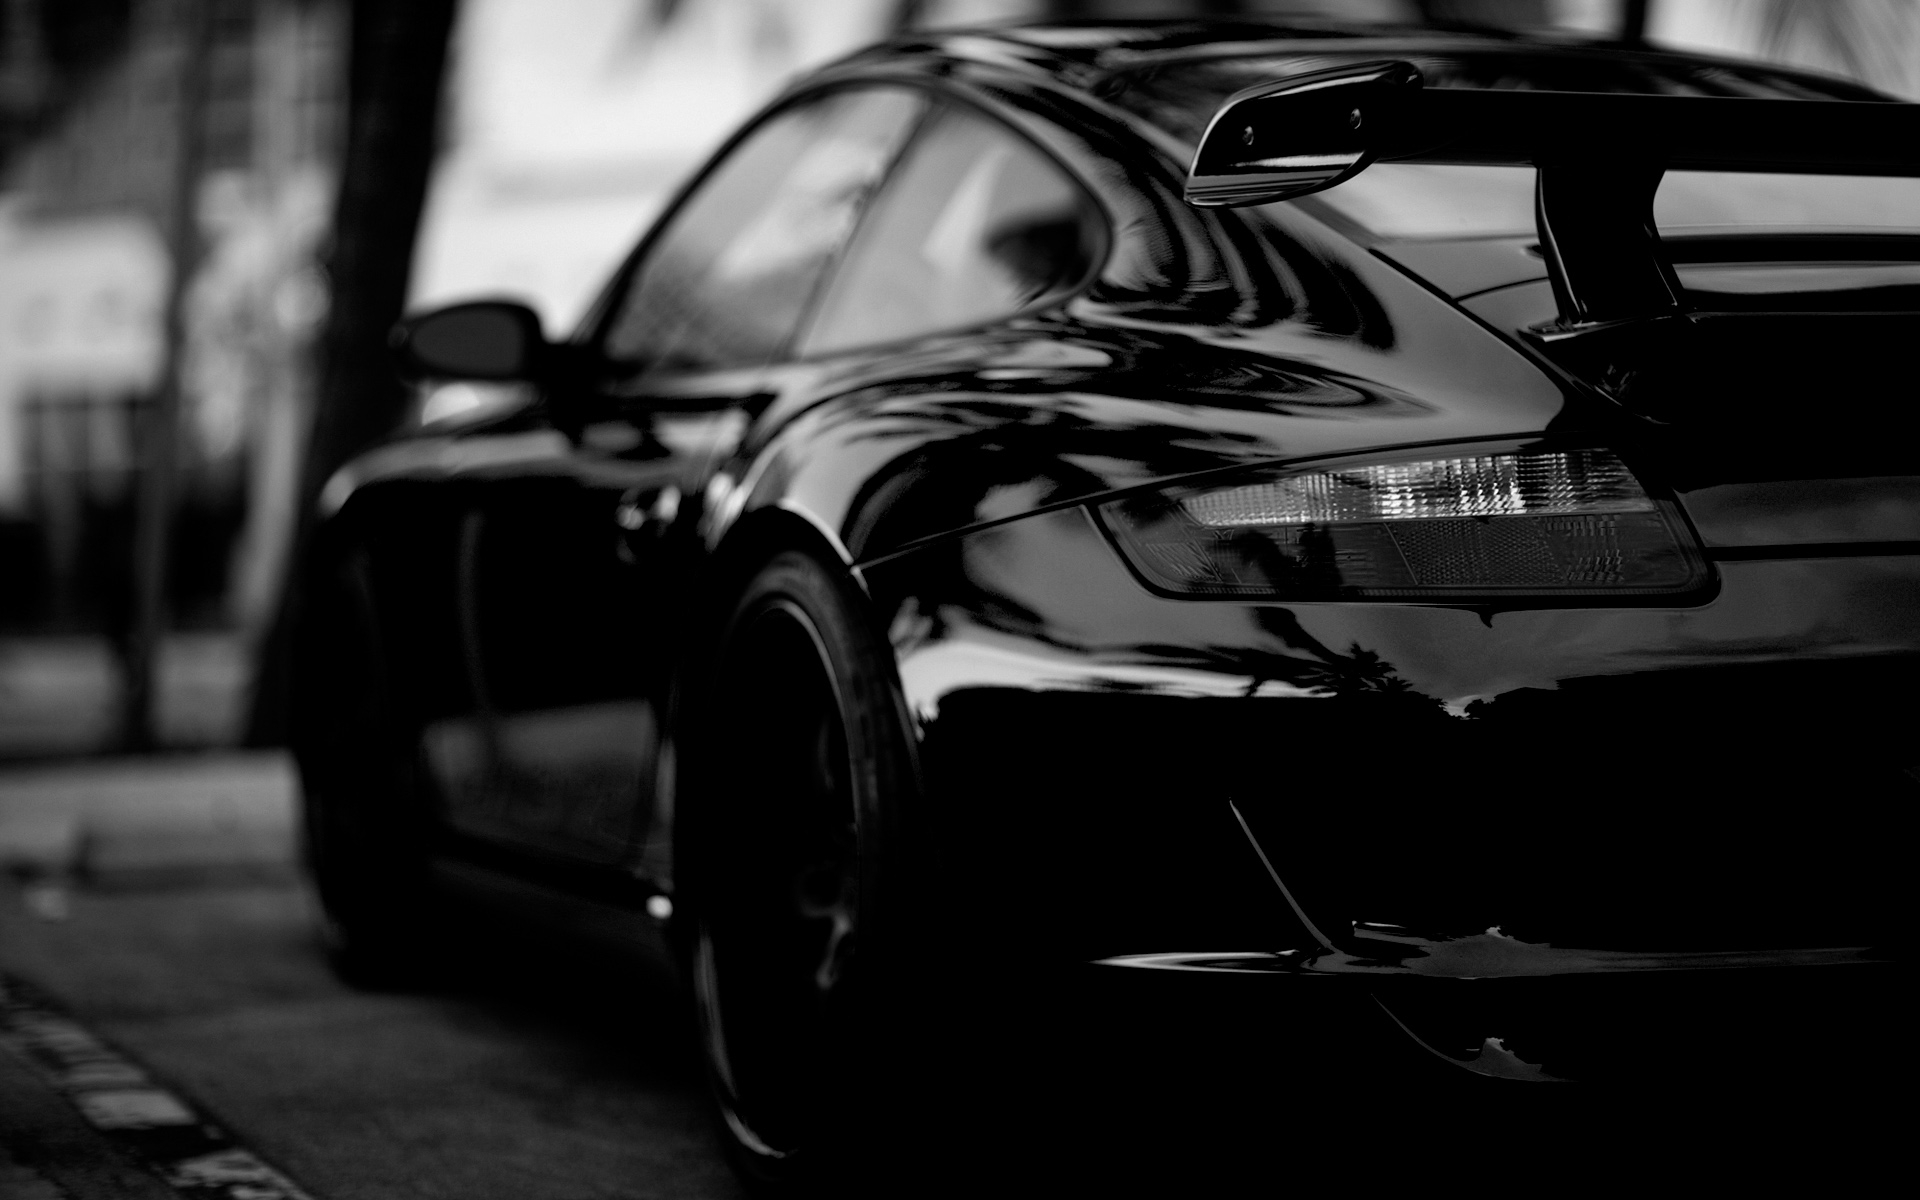 Porsche in Black 242.79 Kb